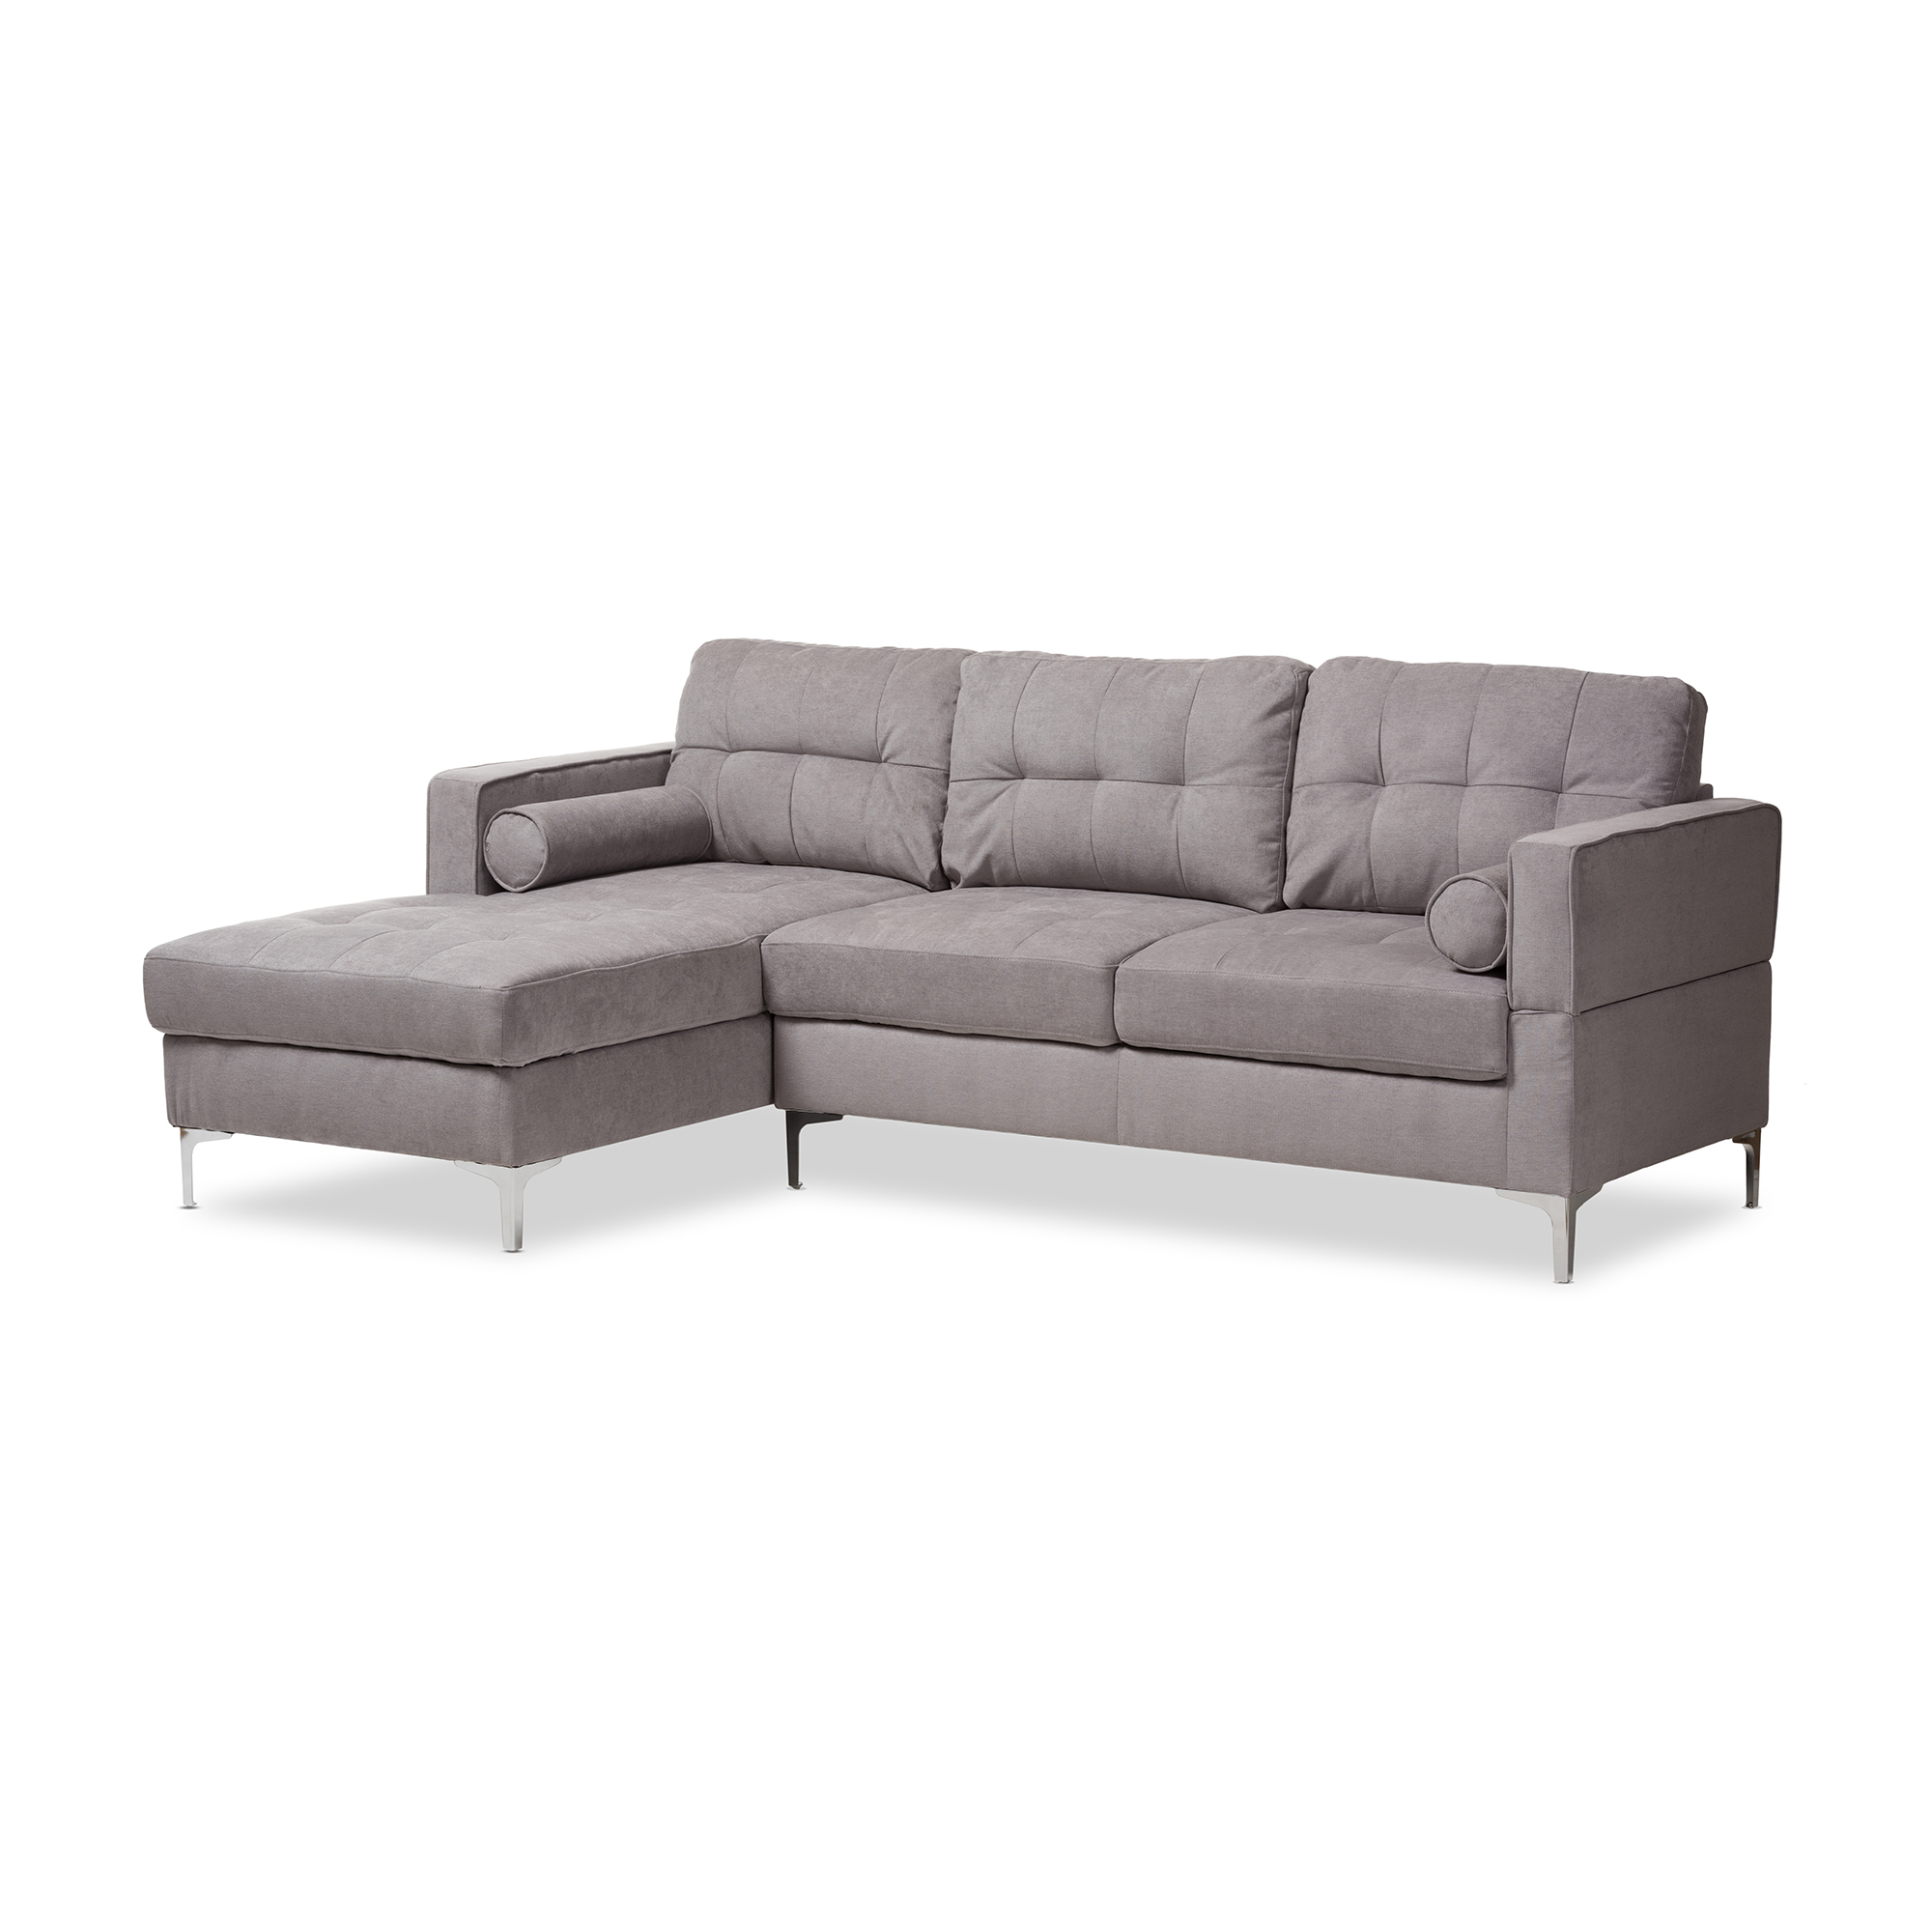 ashfield modern light grey fabric sectional sofa exotic sofas baxton studio mireille and contemporary